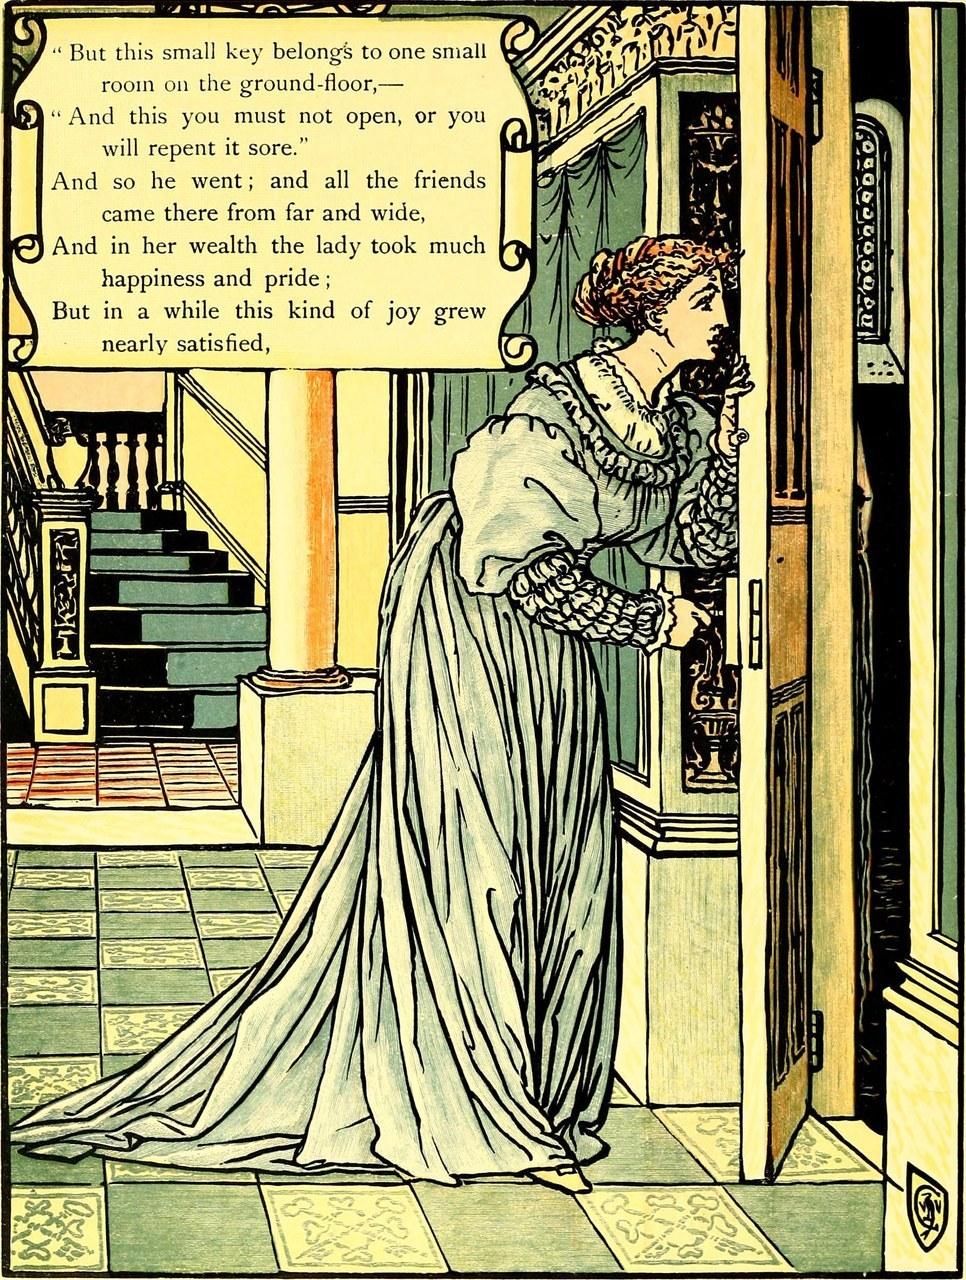 Fig. 1 Walter Crane, Bluebeard's picturebook, 1899, (Wikimedia Commons).